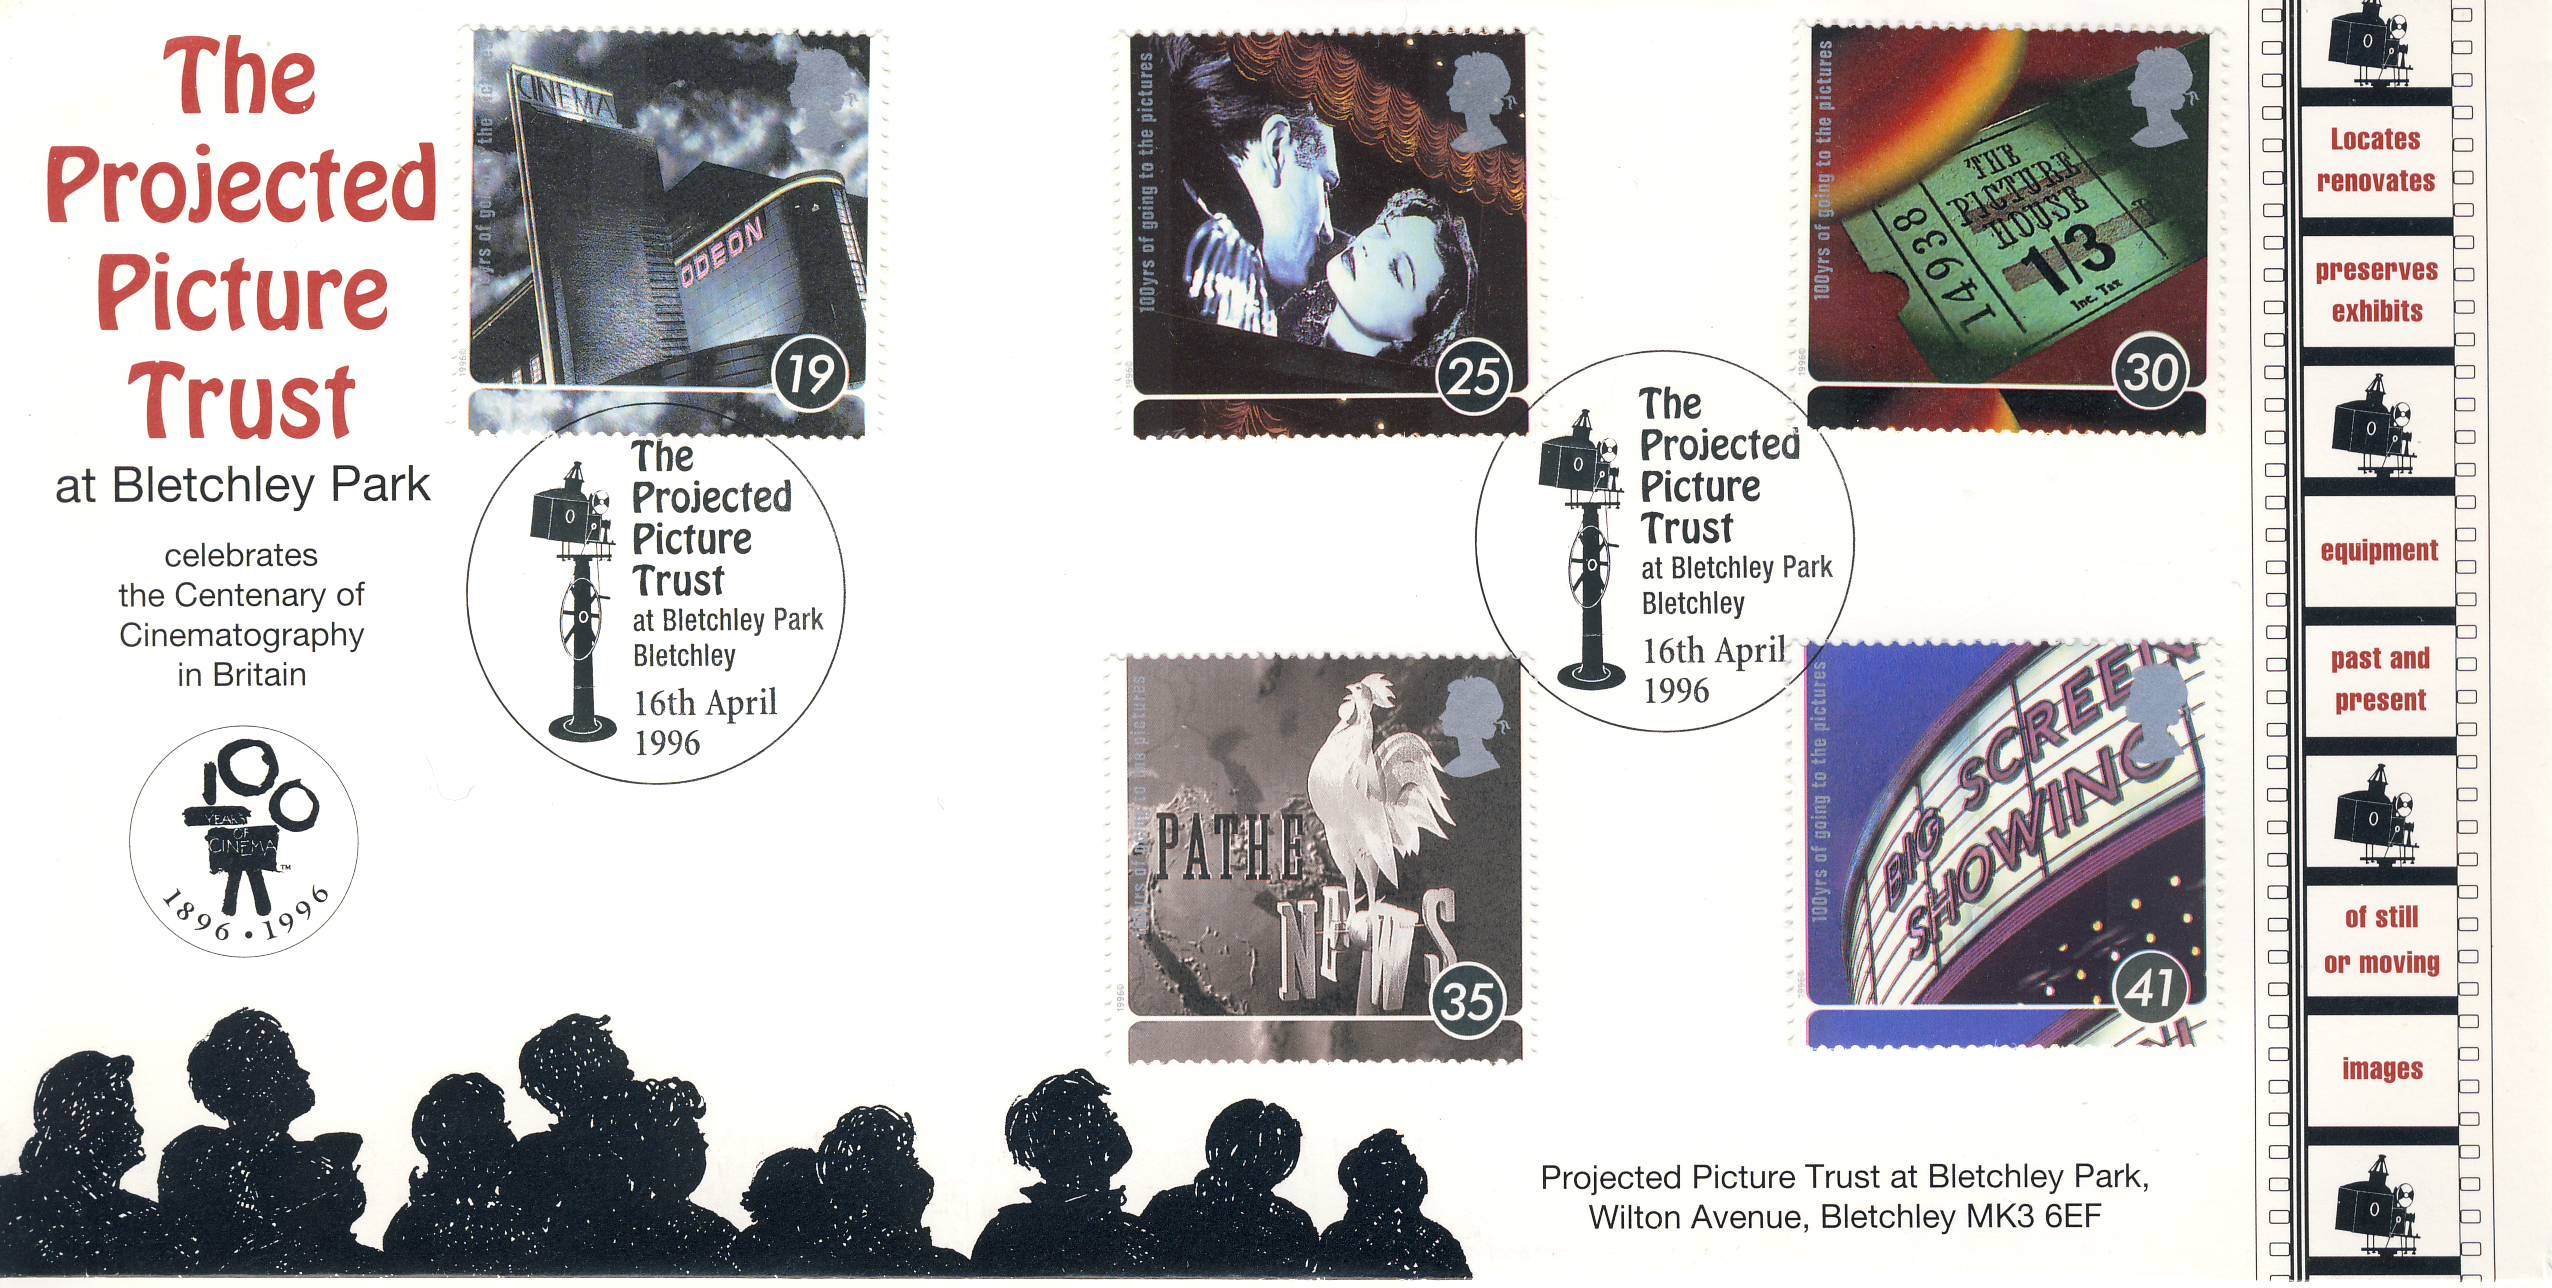 16th April 1996 The Projected Picture Trust BLETCHLEY PARK Limited Edition cover FDC postmark 100 Years of Going To the Pictures stamps. This is a limited edition Engima Codebreakers cover numbered 43 of 1000. Very Good condition.